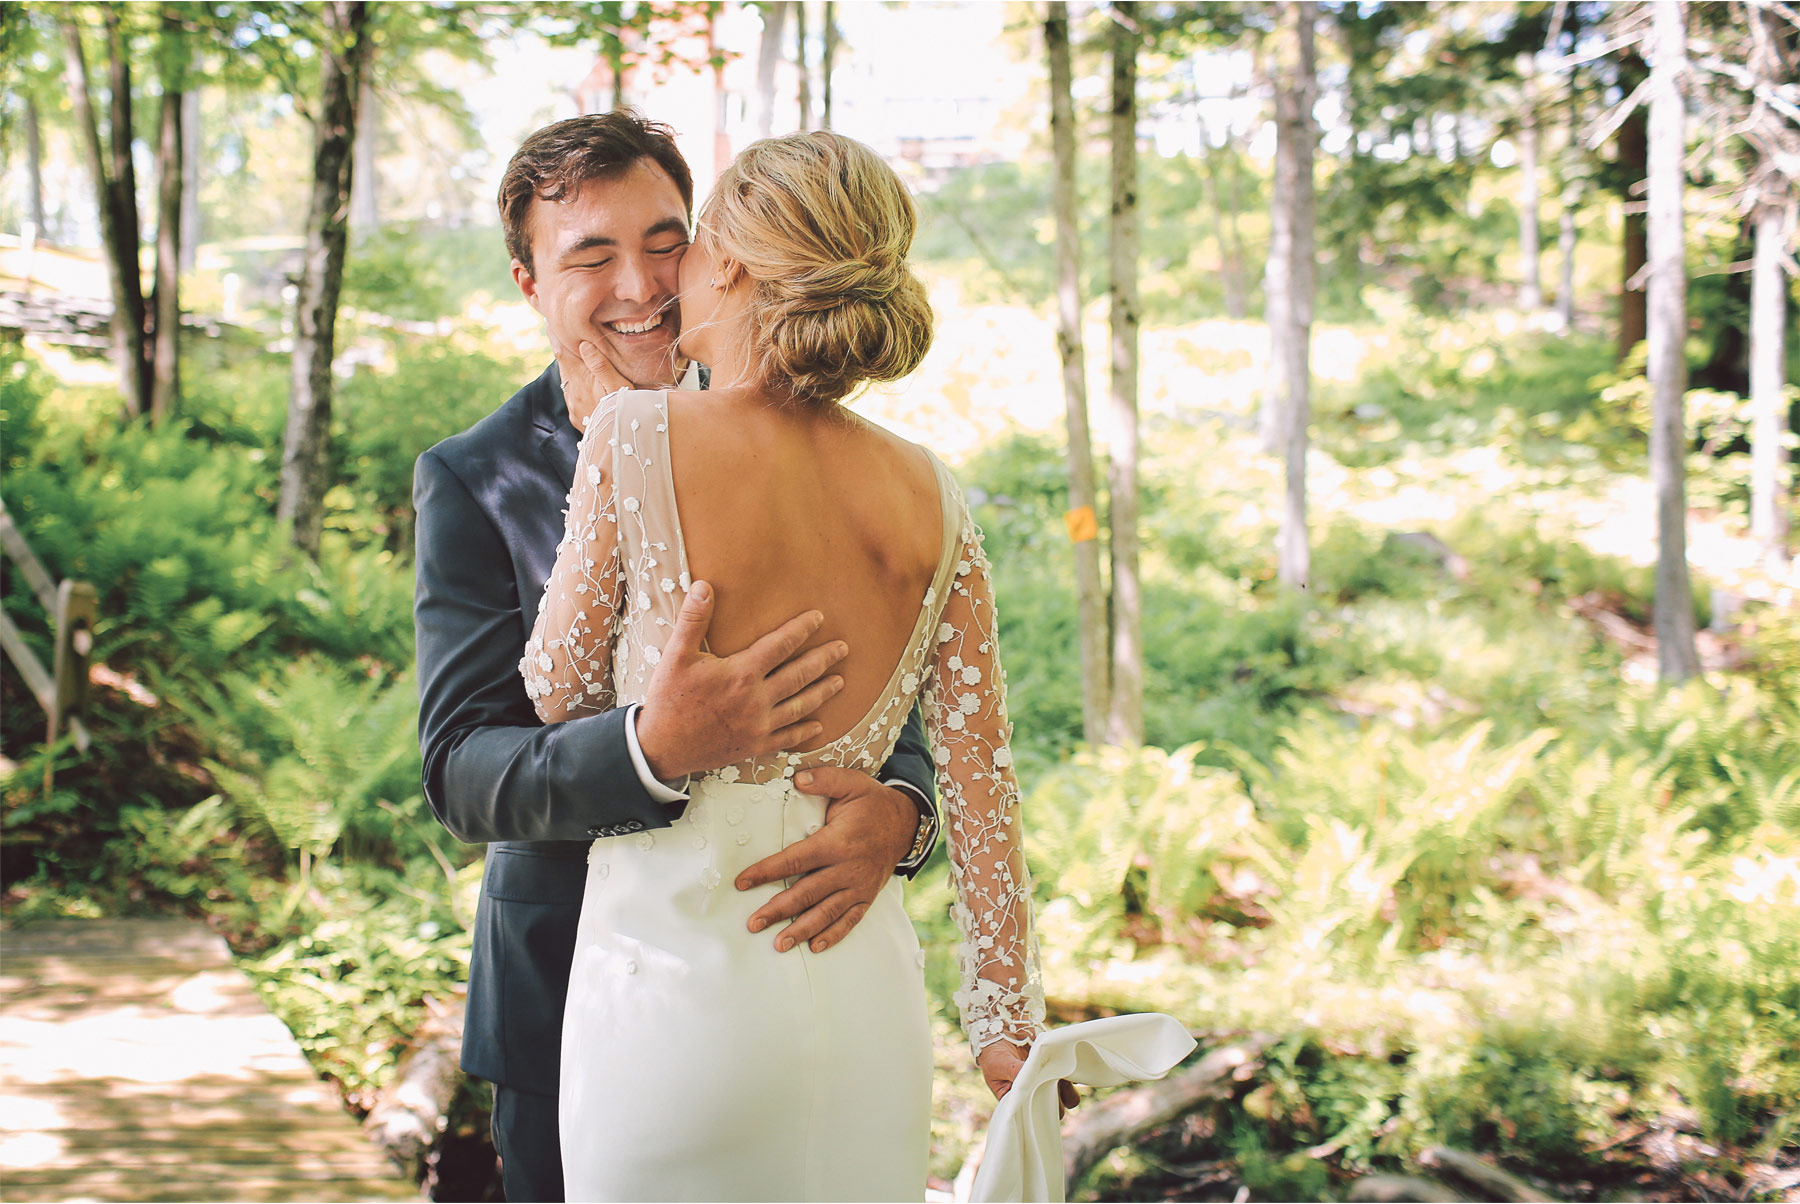 11-Stowe-Vermont-Wedding-Photography-by-Vick-Photography-Edson-Hill-First-Look-Forest-Woods-Mackenzie-and-Jim.jpg